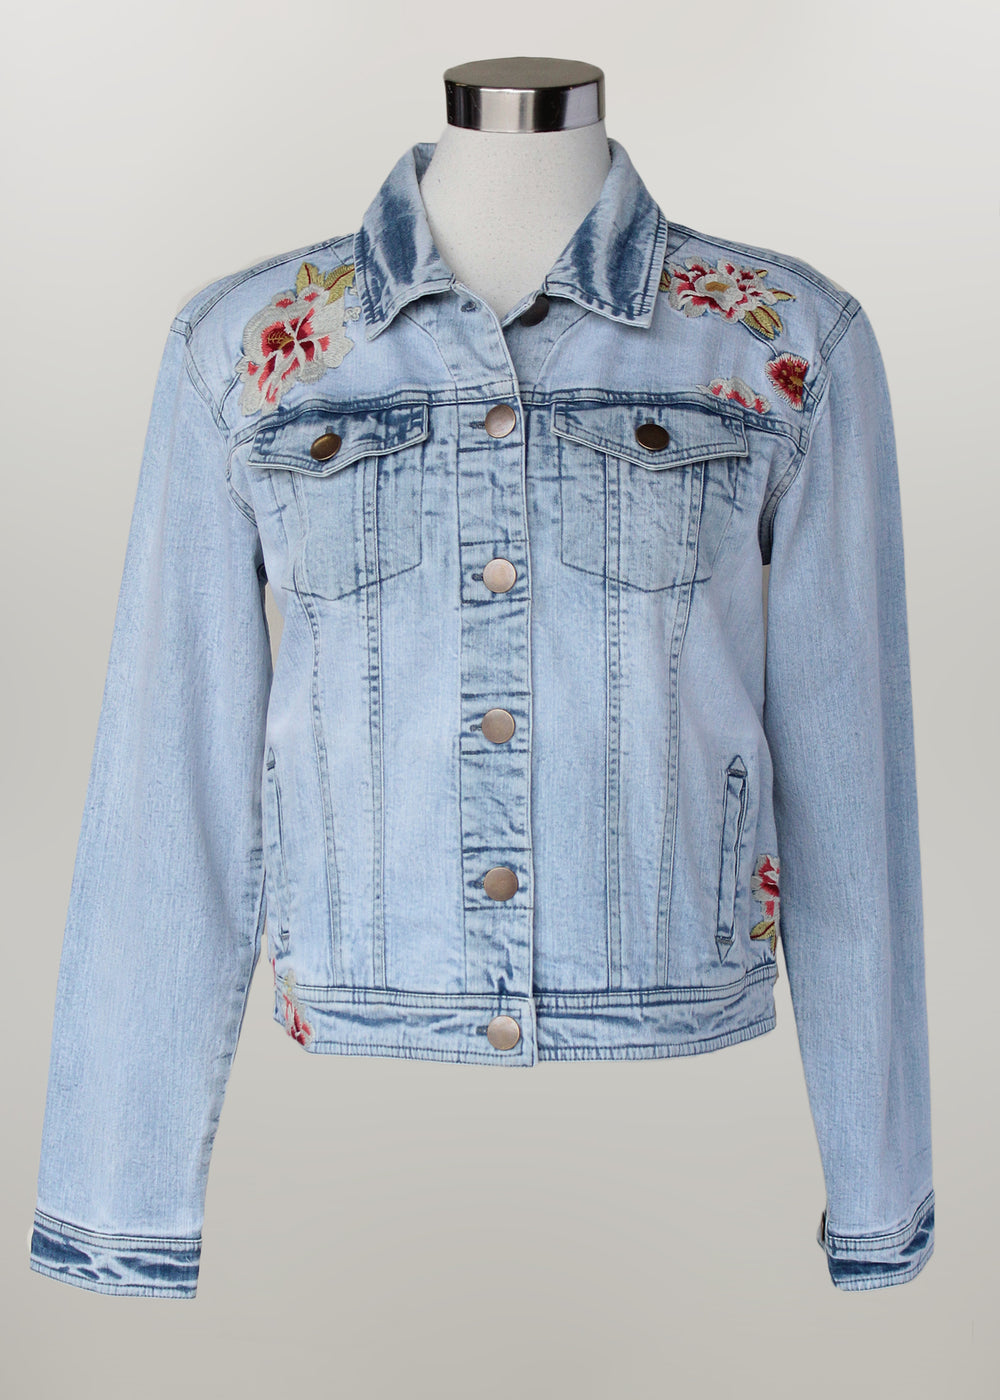 Keren Hart jacket, denim embroidered